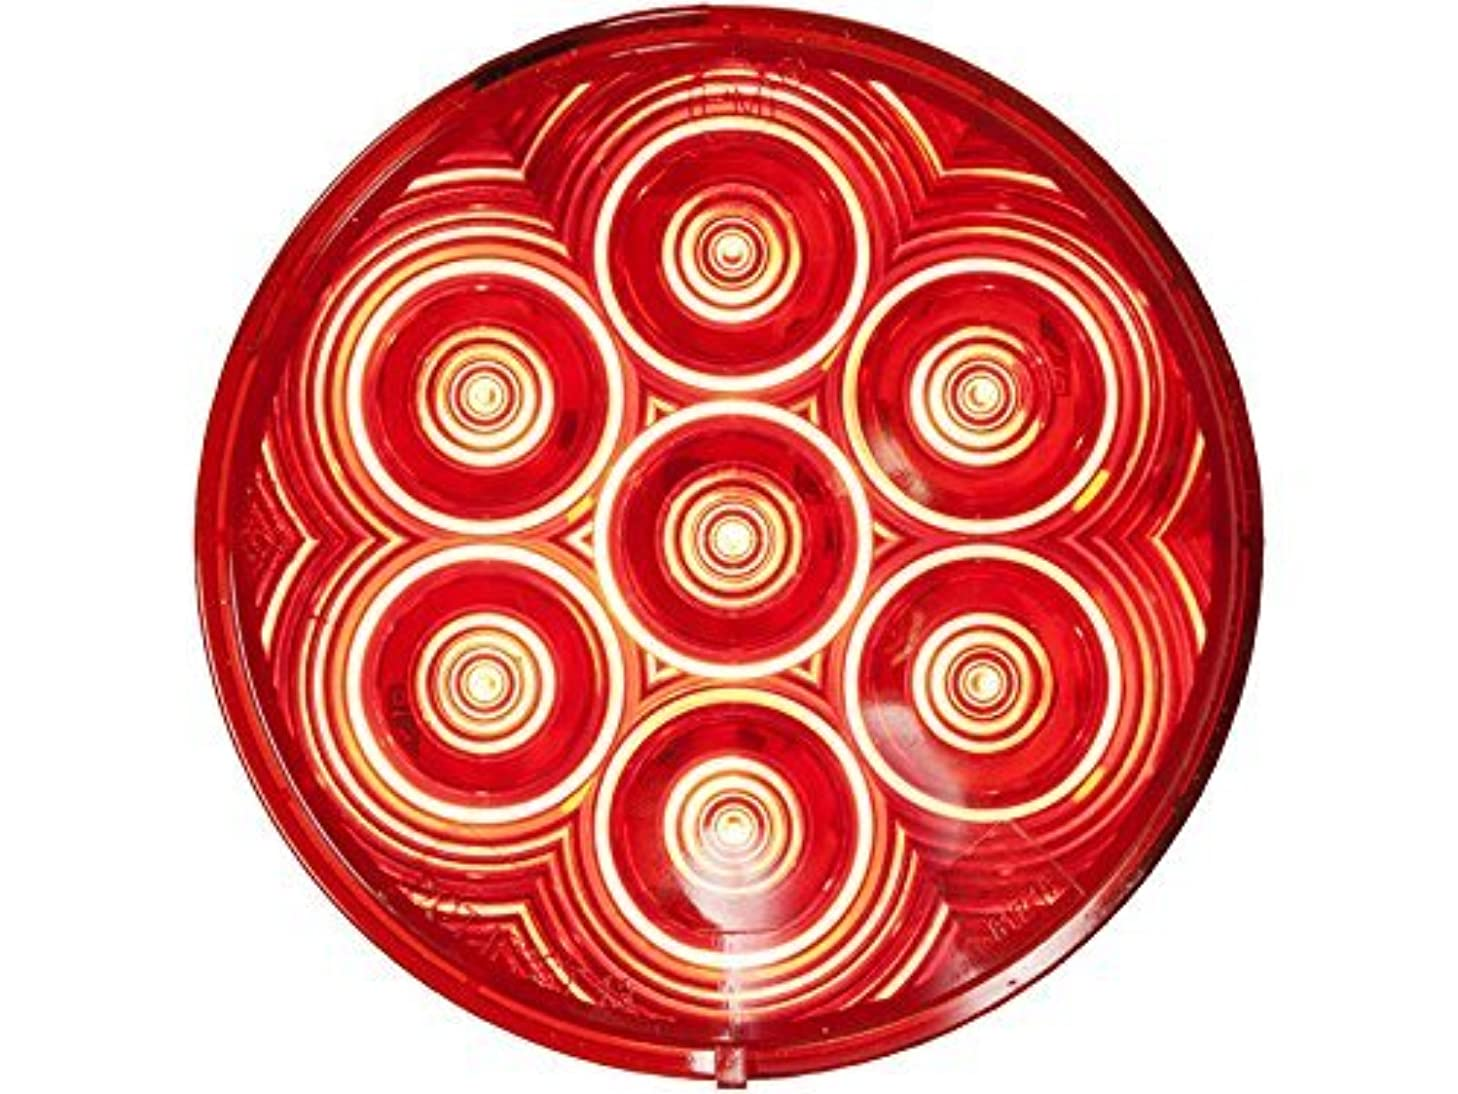 Peterson M826R-7 Round LED Stop, Turn & Tail Light, 4-Inch